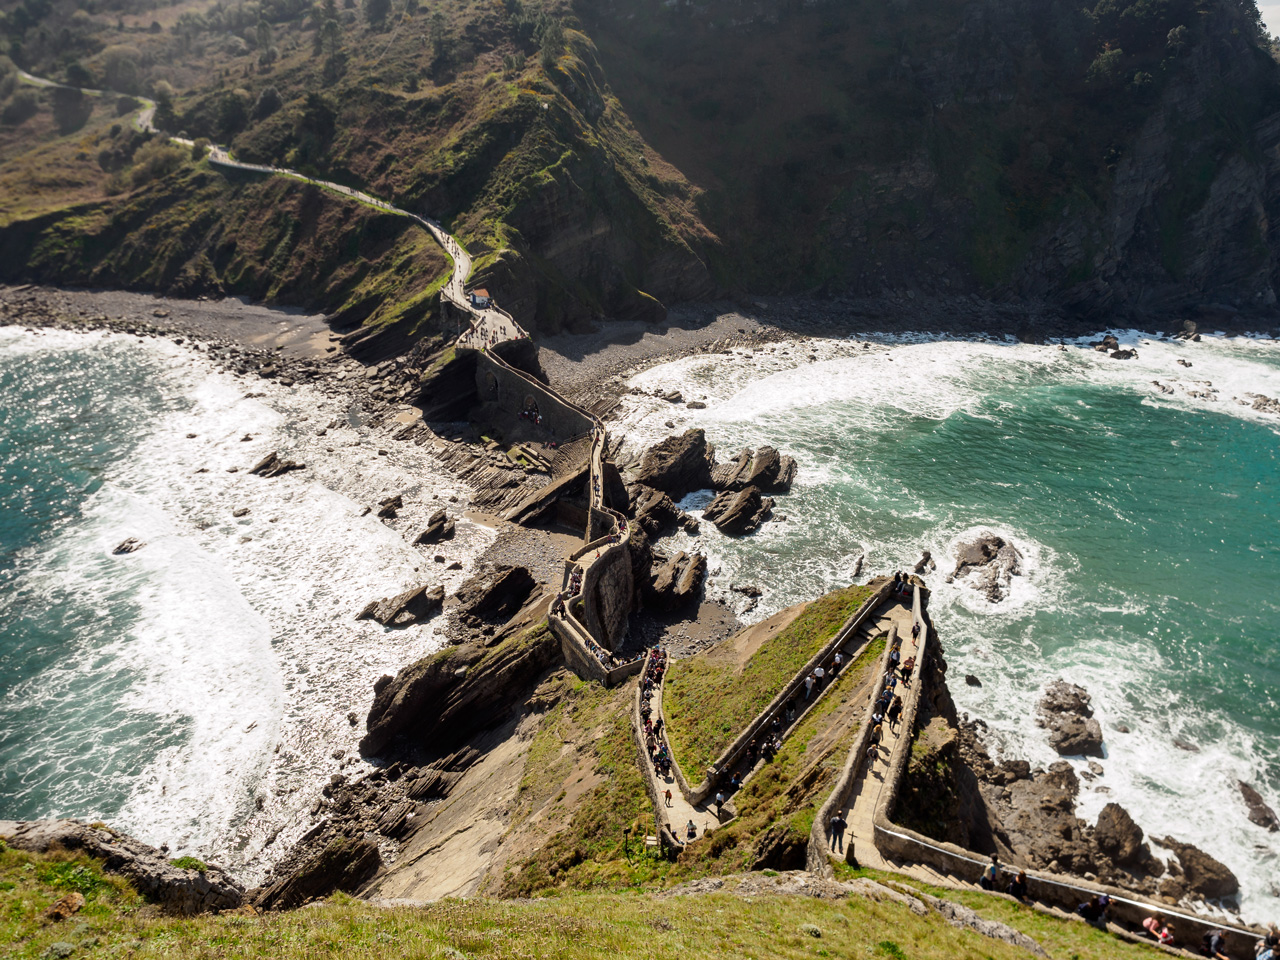 Game of Thrones Filming Locations You Can Visit in Real Life - We Did